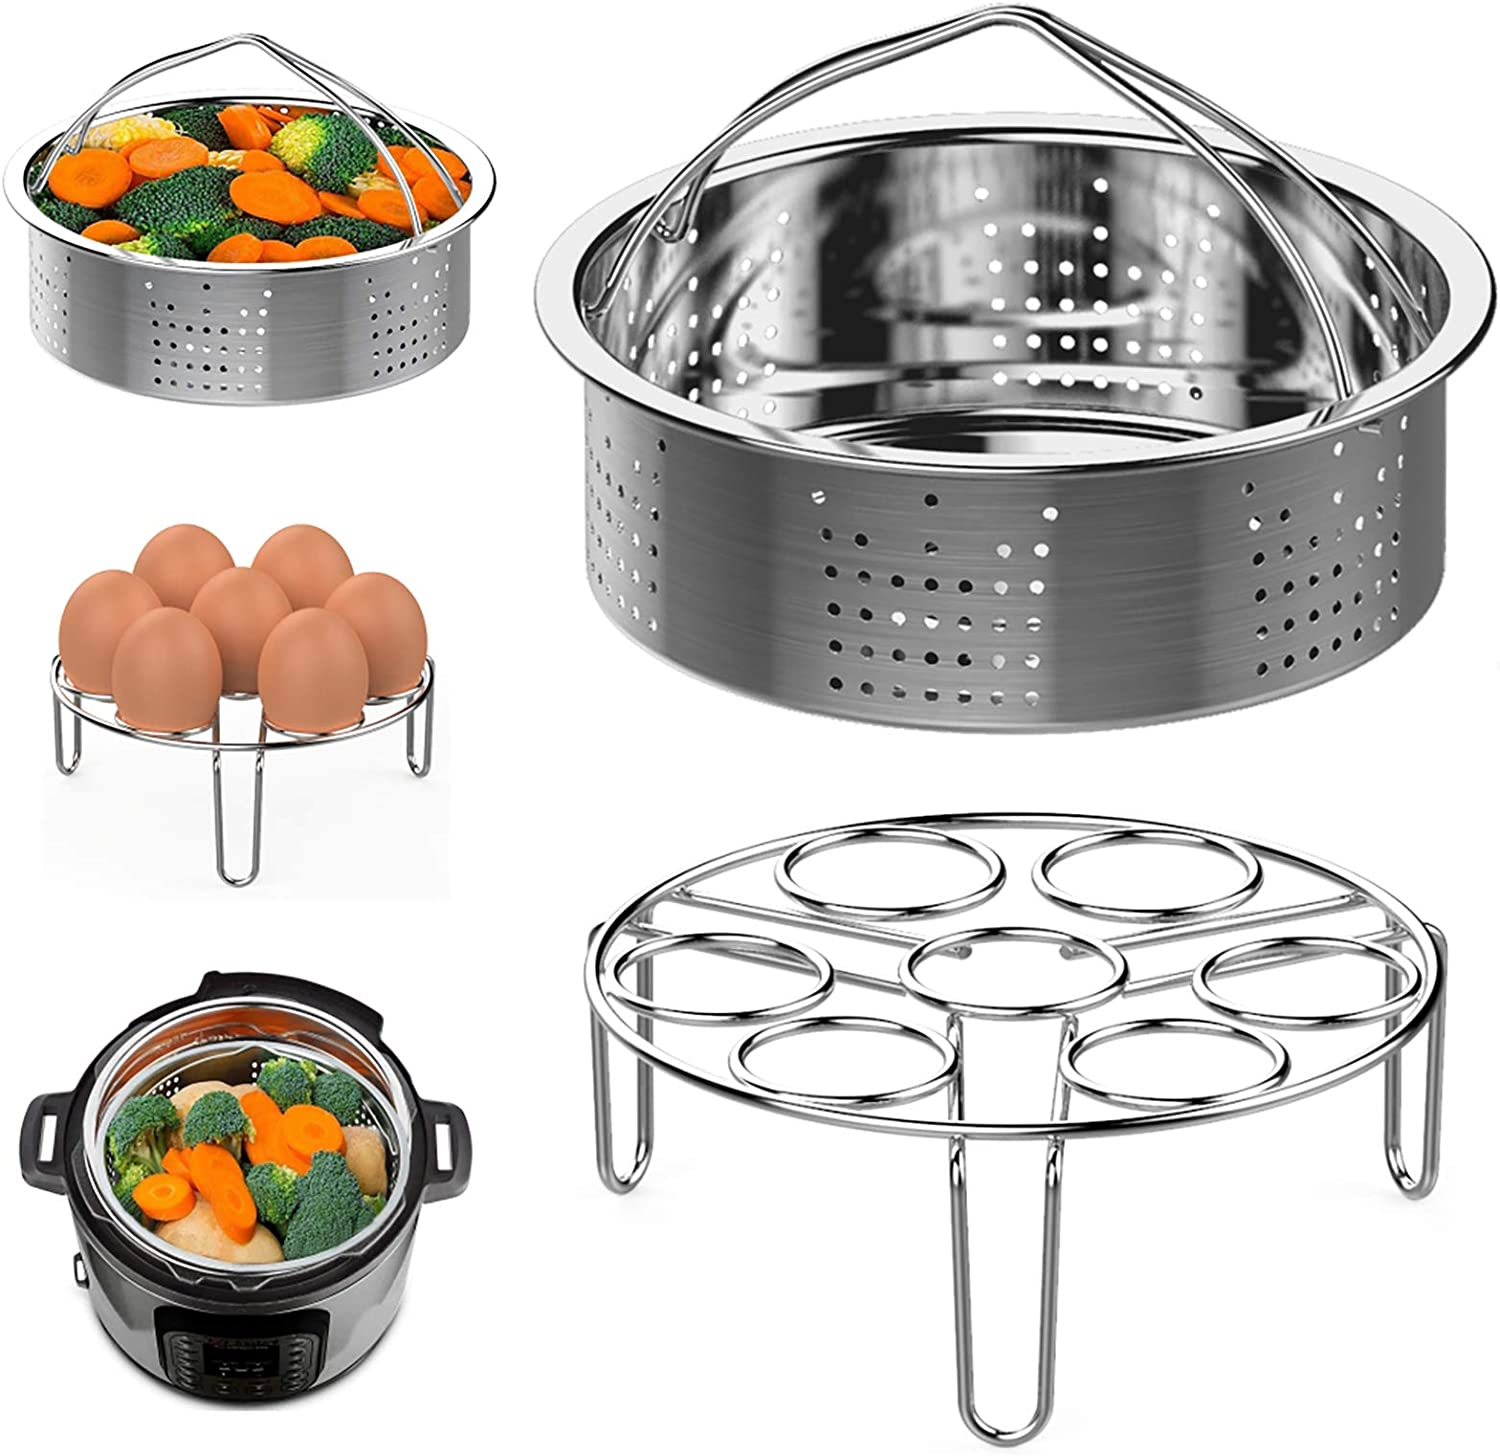 Steamer Basket and Egg Steamer Rack, Packism Stainless Steel Vegetable Steaming Trivet Holder Fit 5qt 6qt Instant Pot accessories Pressure Cooker Air Fryer Ninja Foodi, Small Size